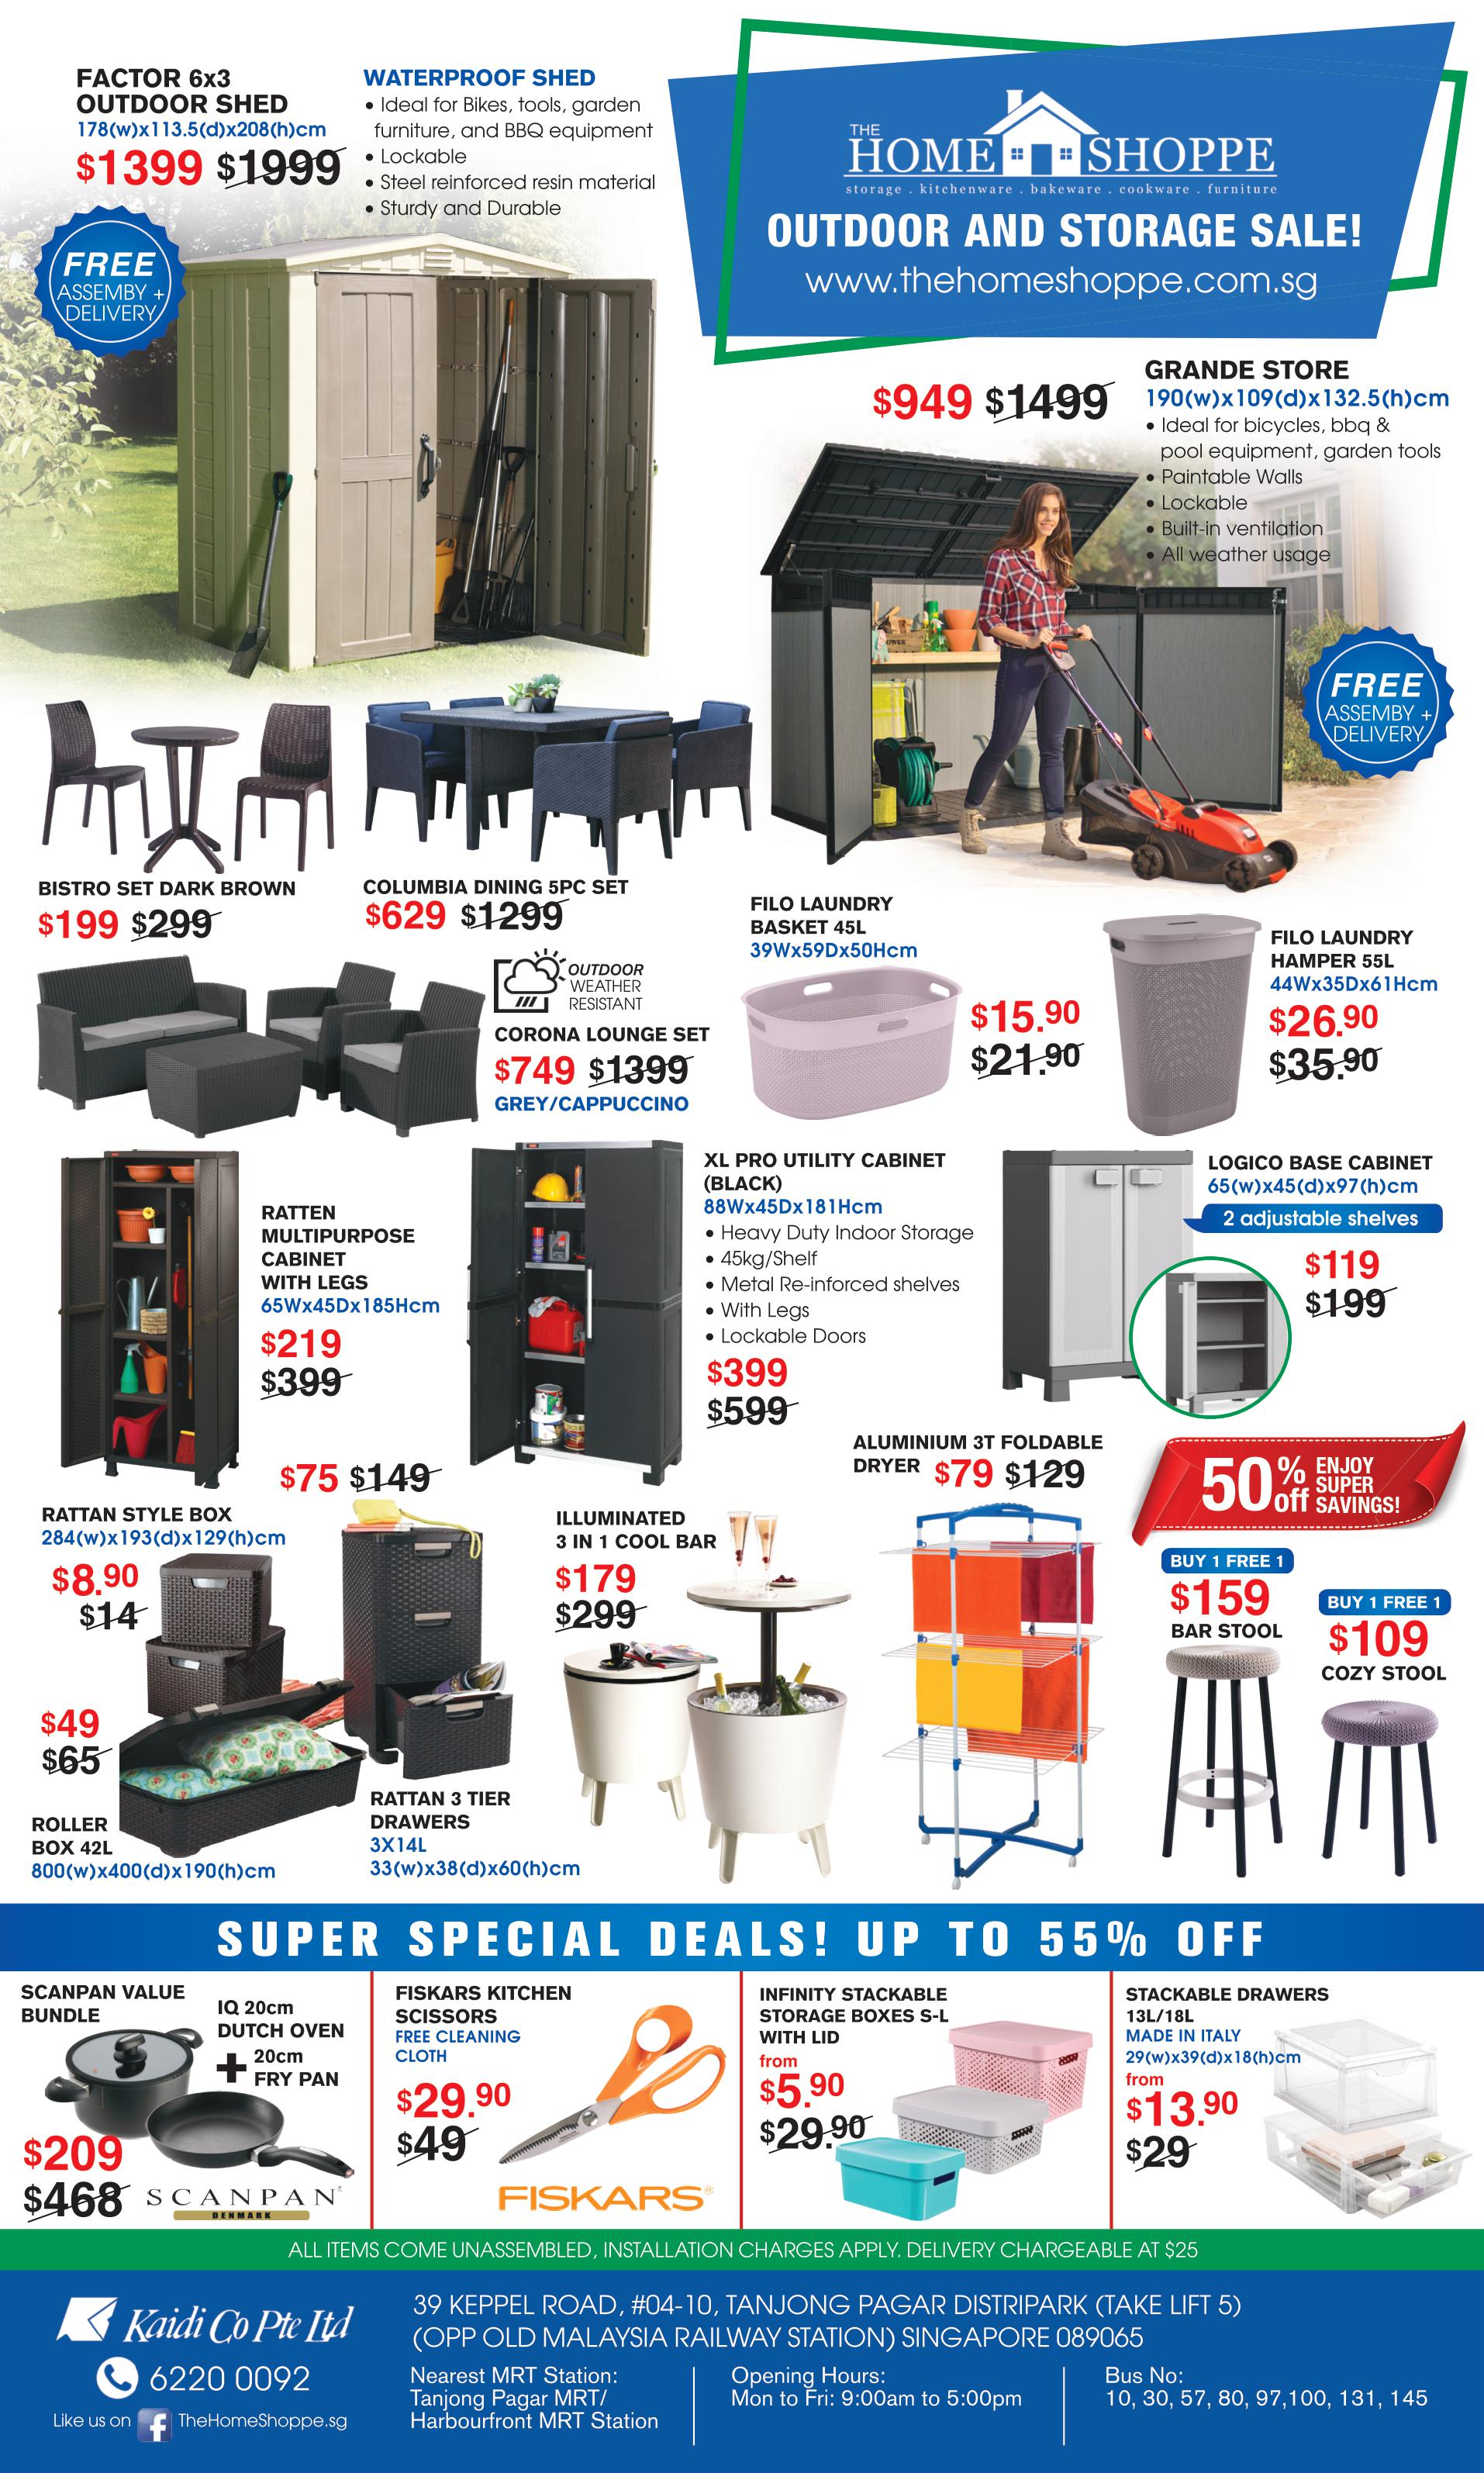 The home shoppe march april promotions outdoor shed garden furniture sofa sets indoor storage plastic cabinets cool bar laundry baskets clothes rattan style drawers boxes scanpan pots oven kitchen scissors fiskars stackable box sale cheap sg